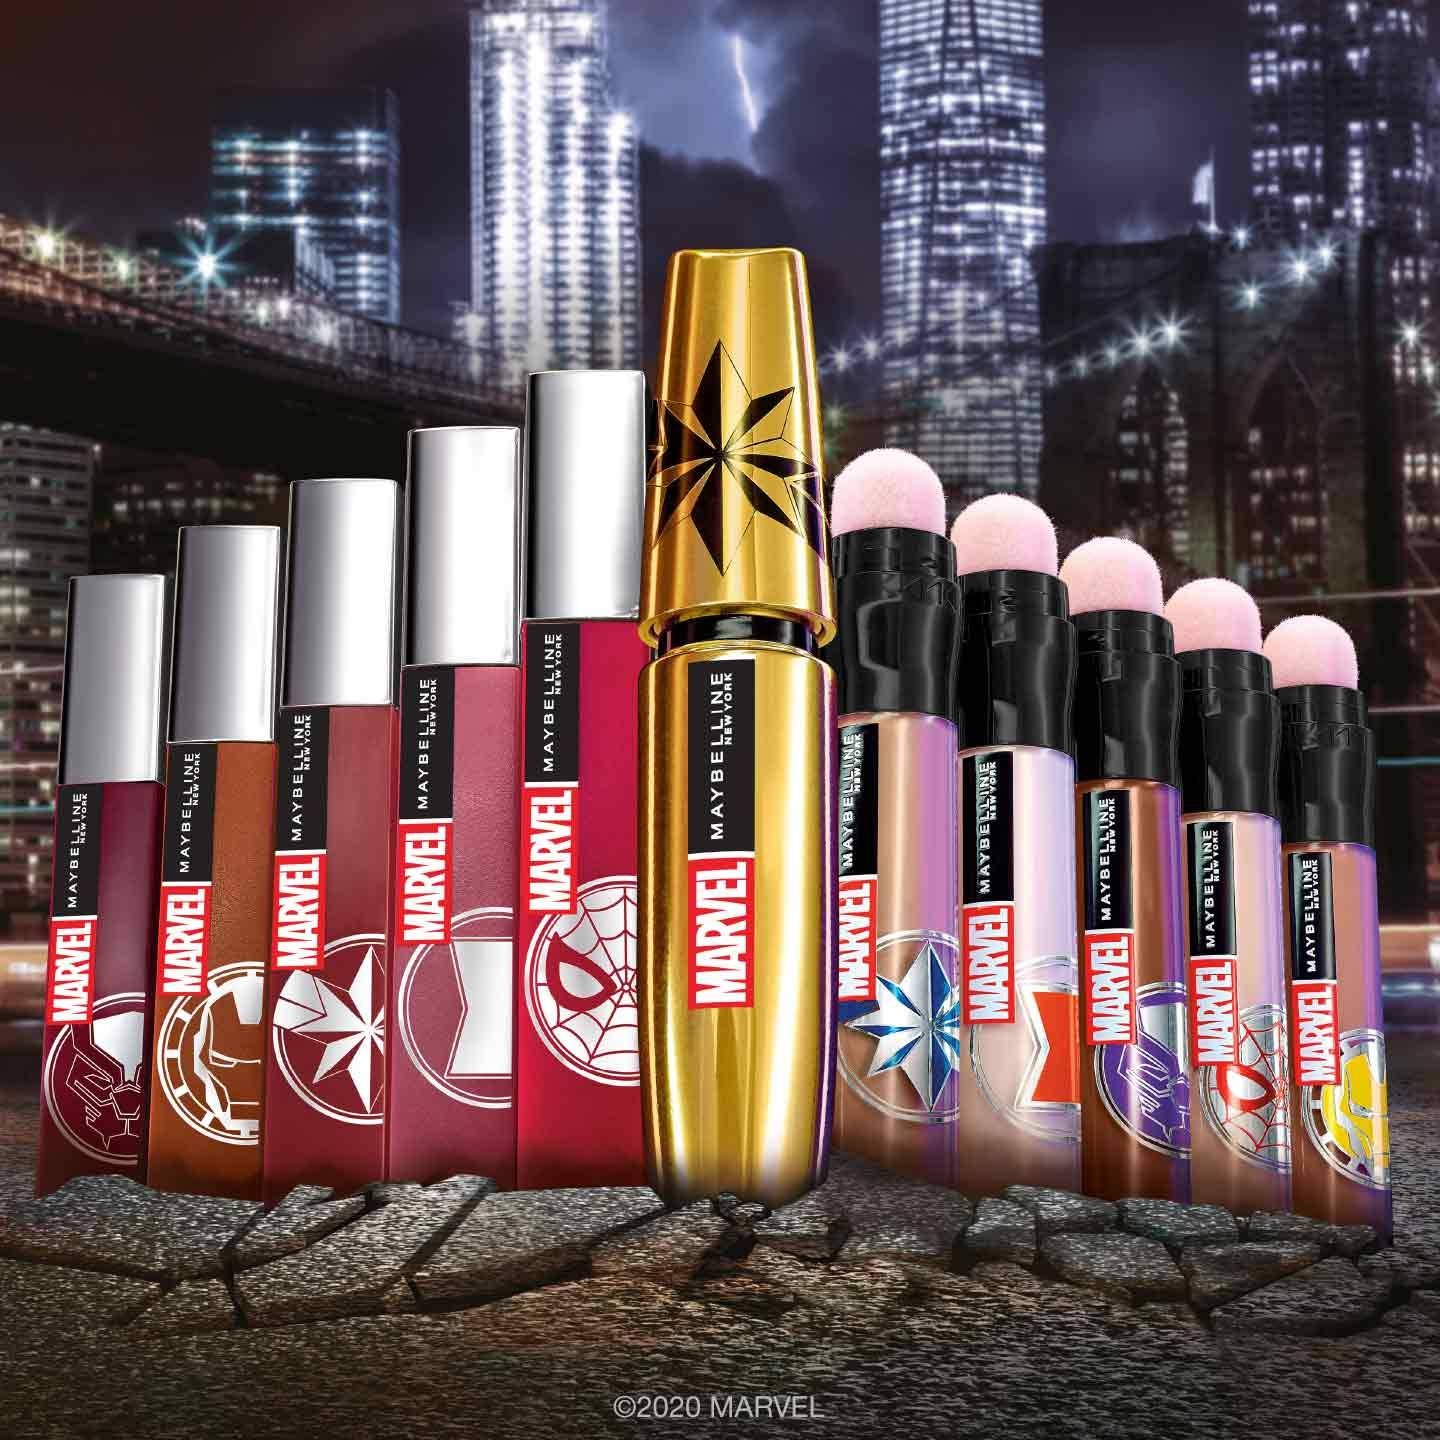 Maybelline x Marvel Makeup Collection